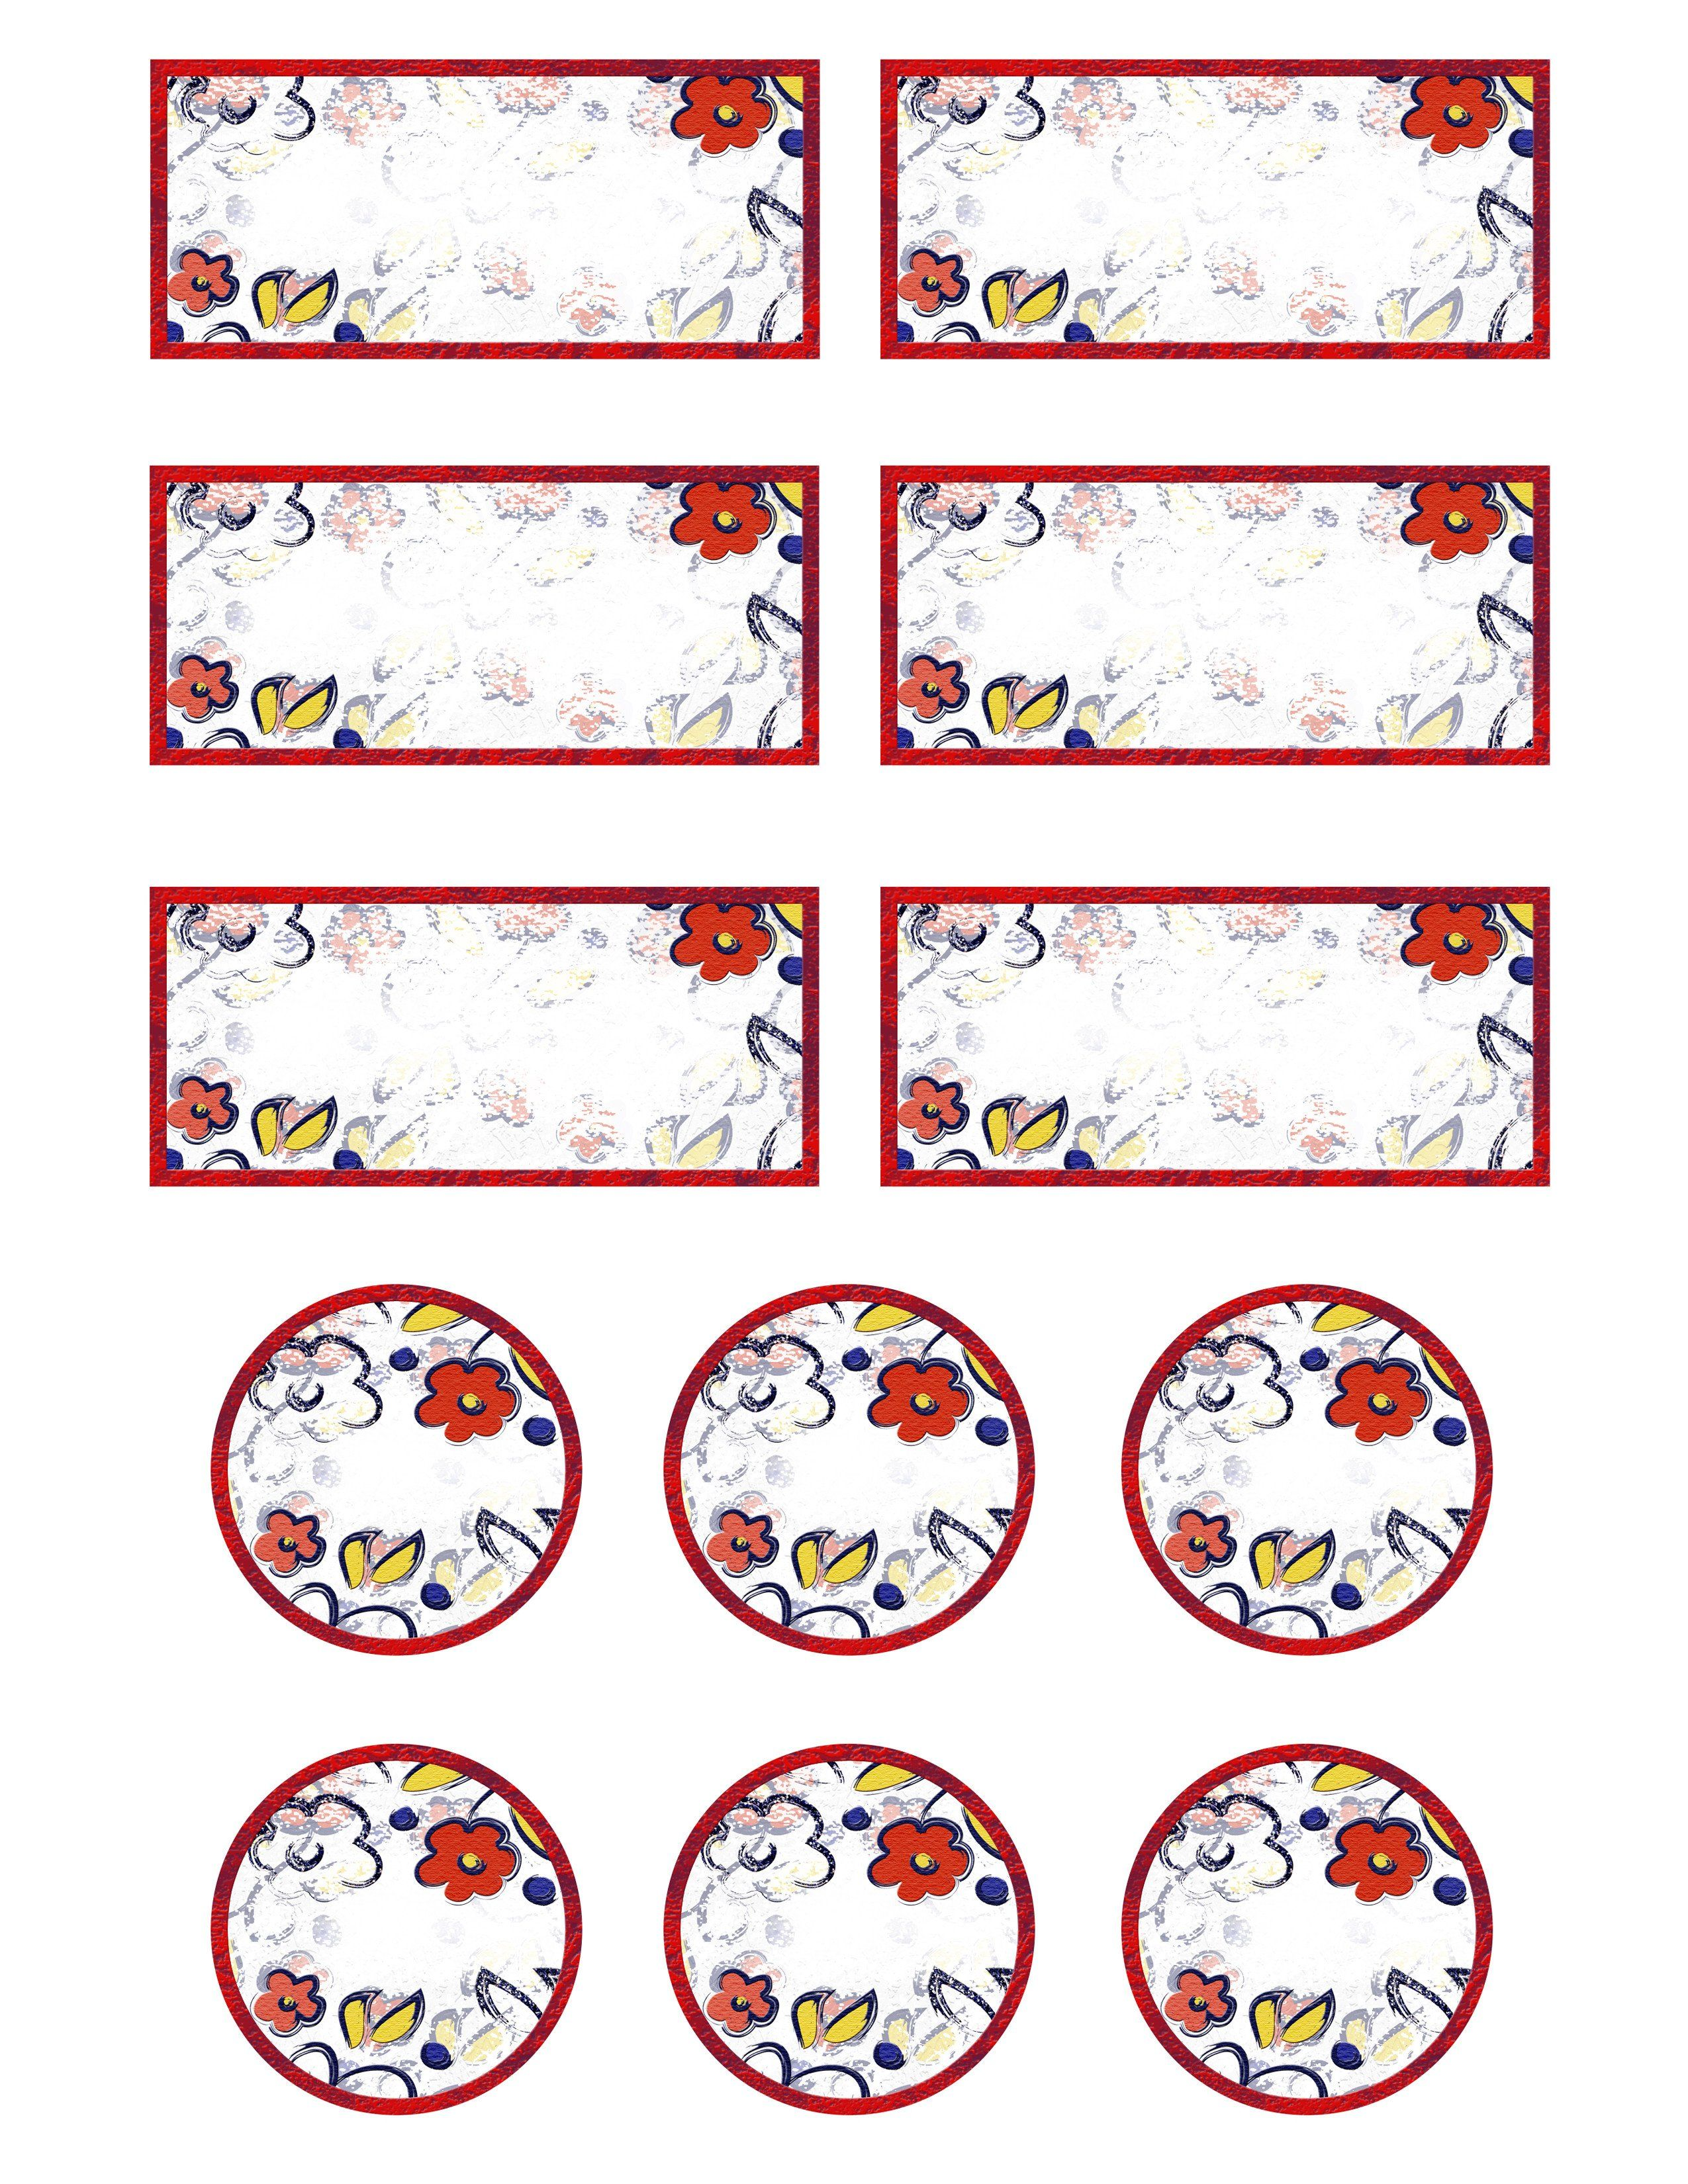 Free Printable Labels Template Free Printable Jar Labels For Home Canning Labels Printables Free Templates Printable Label Templates Labels Printables Free